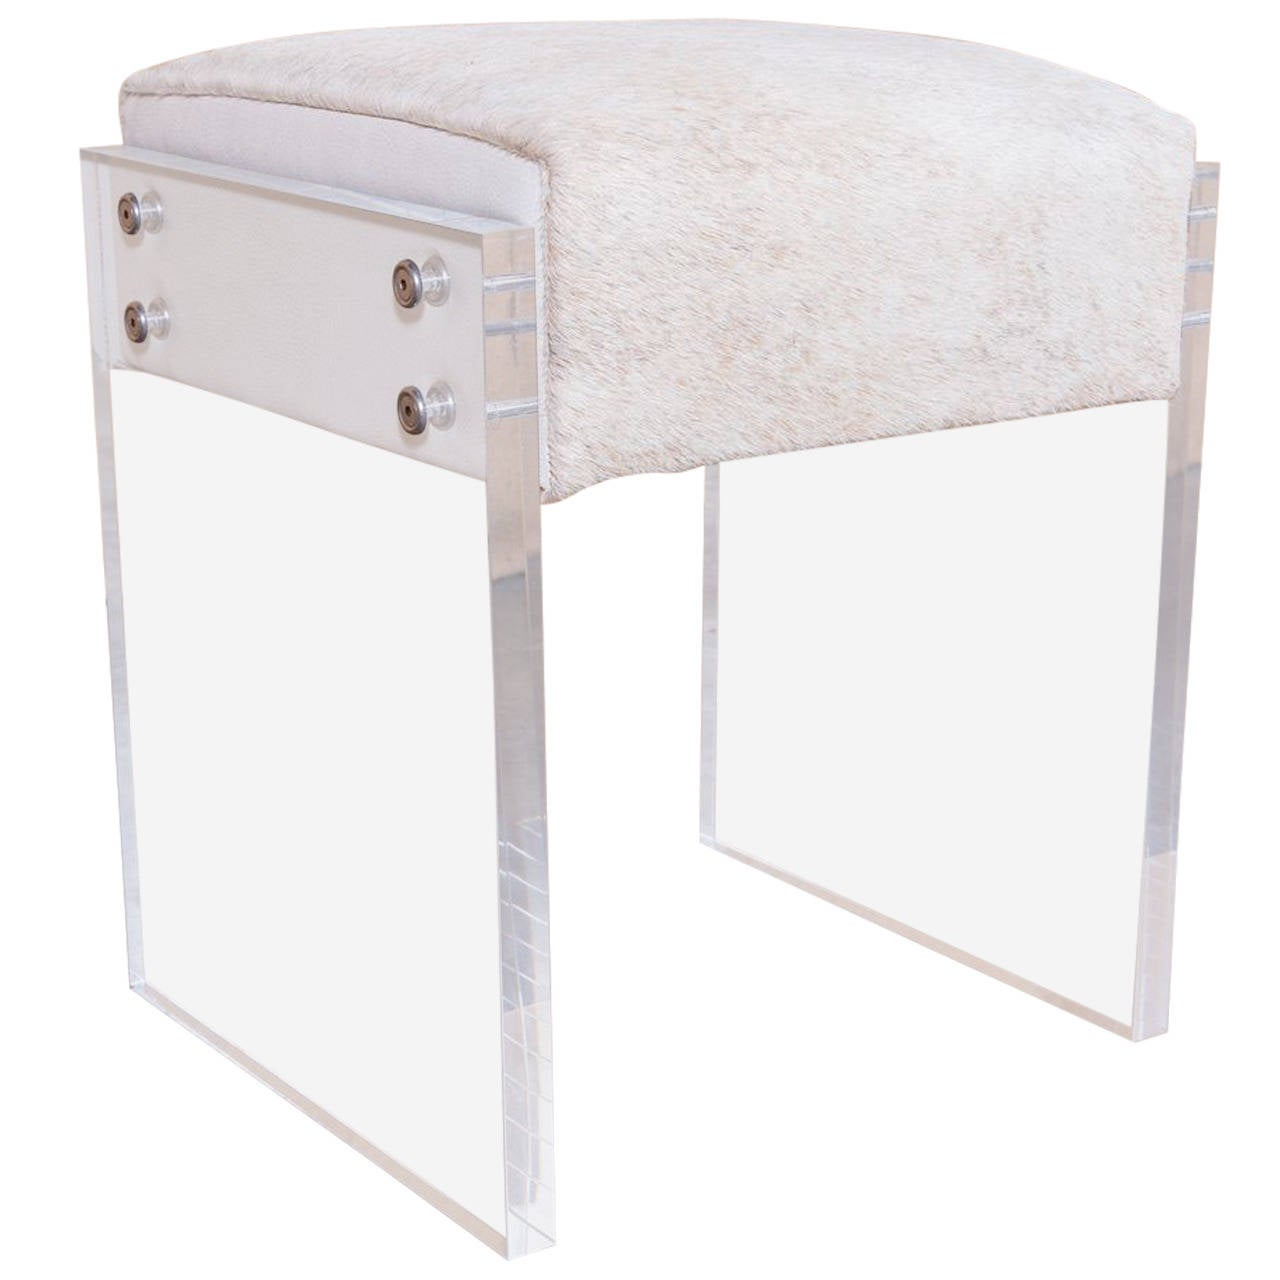 Coco Lucite Vanity Stool For Sale at 1stdibs : 2447542l from www.1stdibs.com size 1280 x 1280 jpeg 74kB